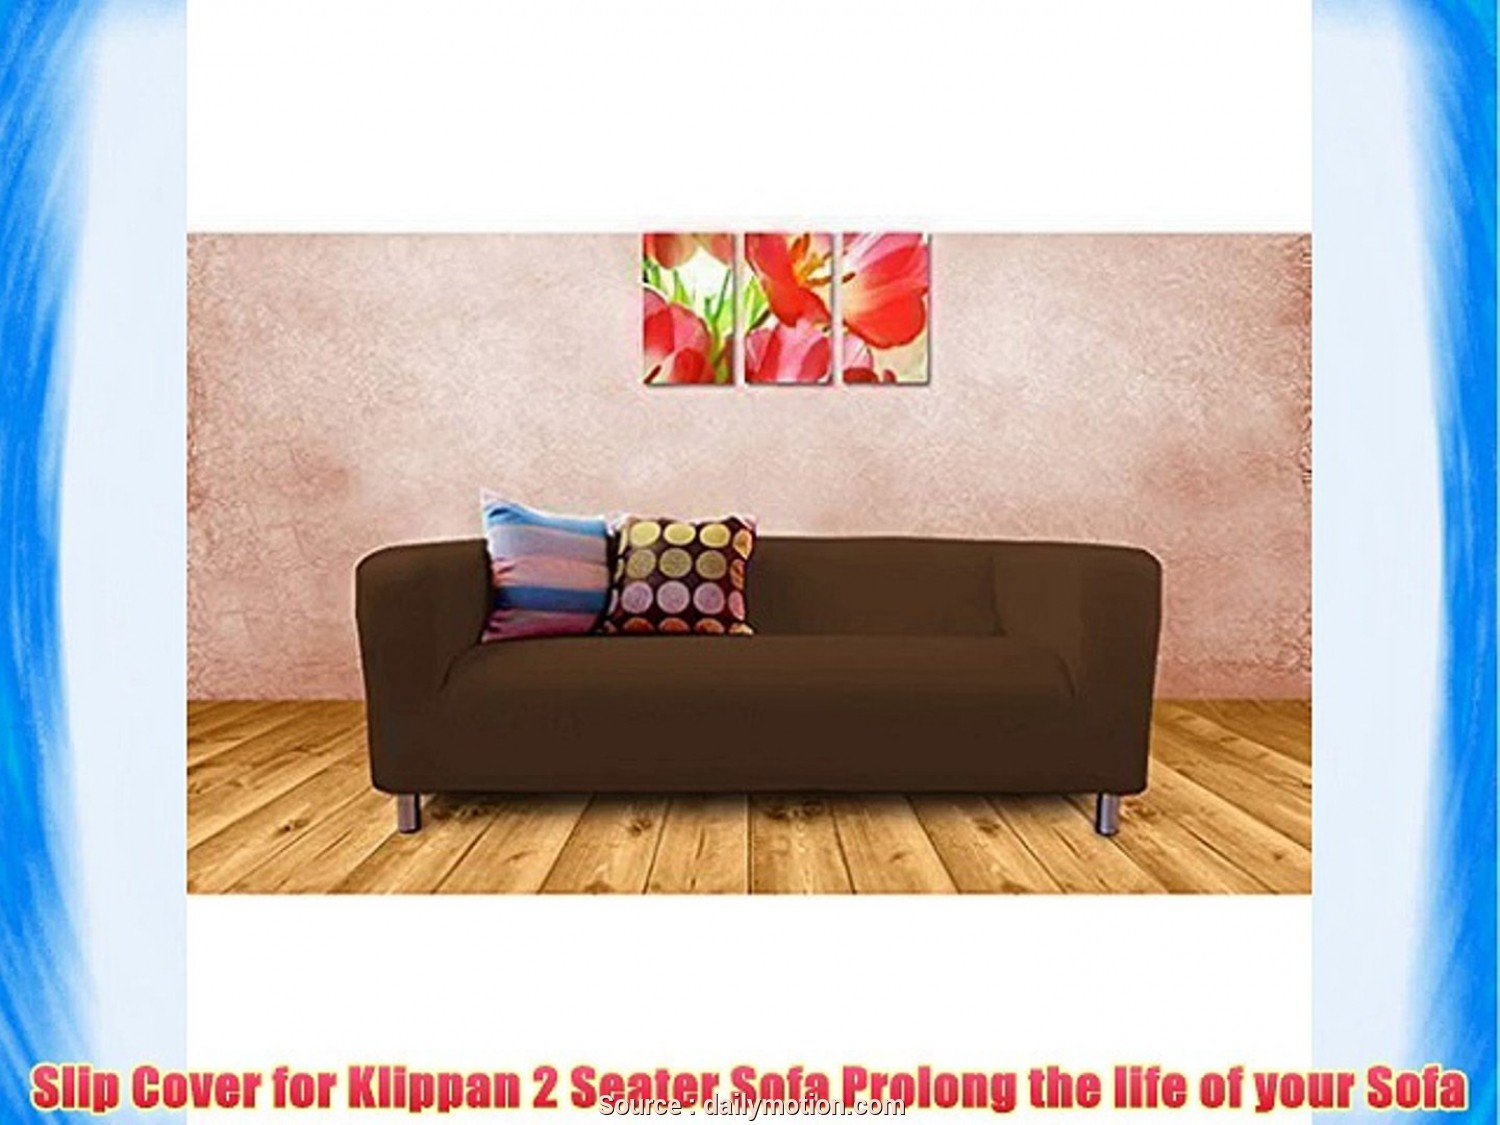 Klippan Ikea Malaysia, Amabile Ikea Klippan 2 Seater Sofa Replacement Slip Cover Chocolate, Video Dailymotion